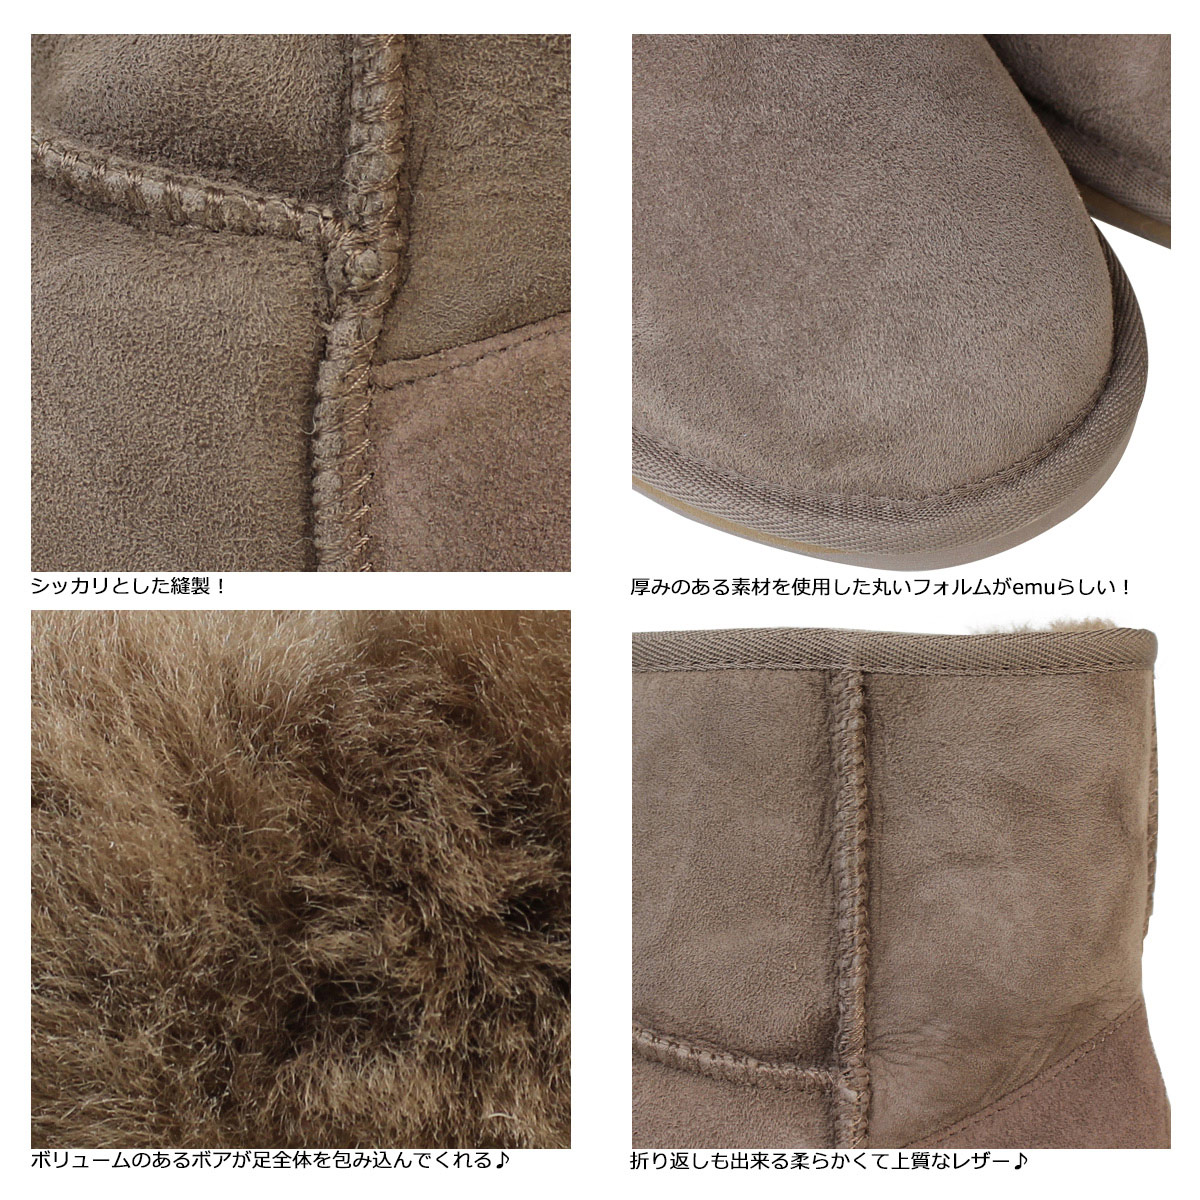 «Reservation products» «9 / 30 when I will be in stock» EMU EMU Stinger mini Sheepskin boots W10003 STINGER MINI Sheepskin Womens mens boots